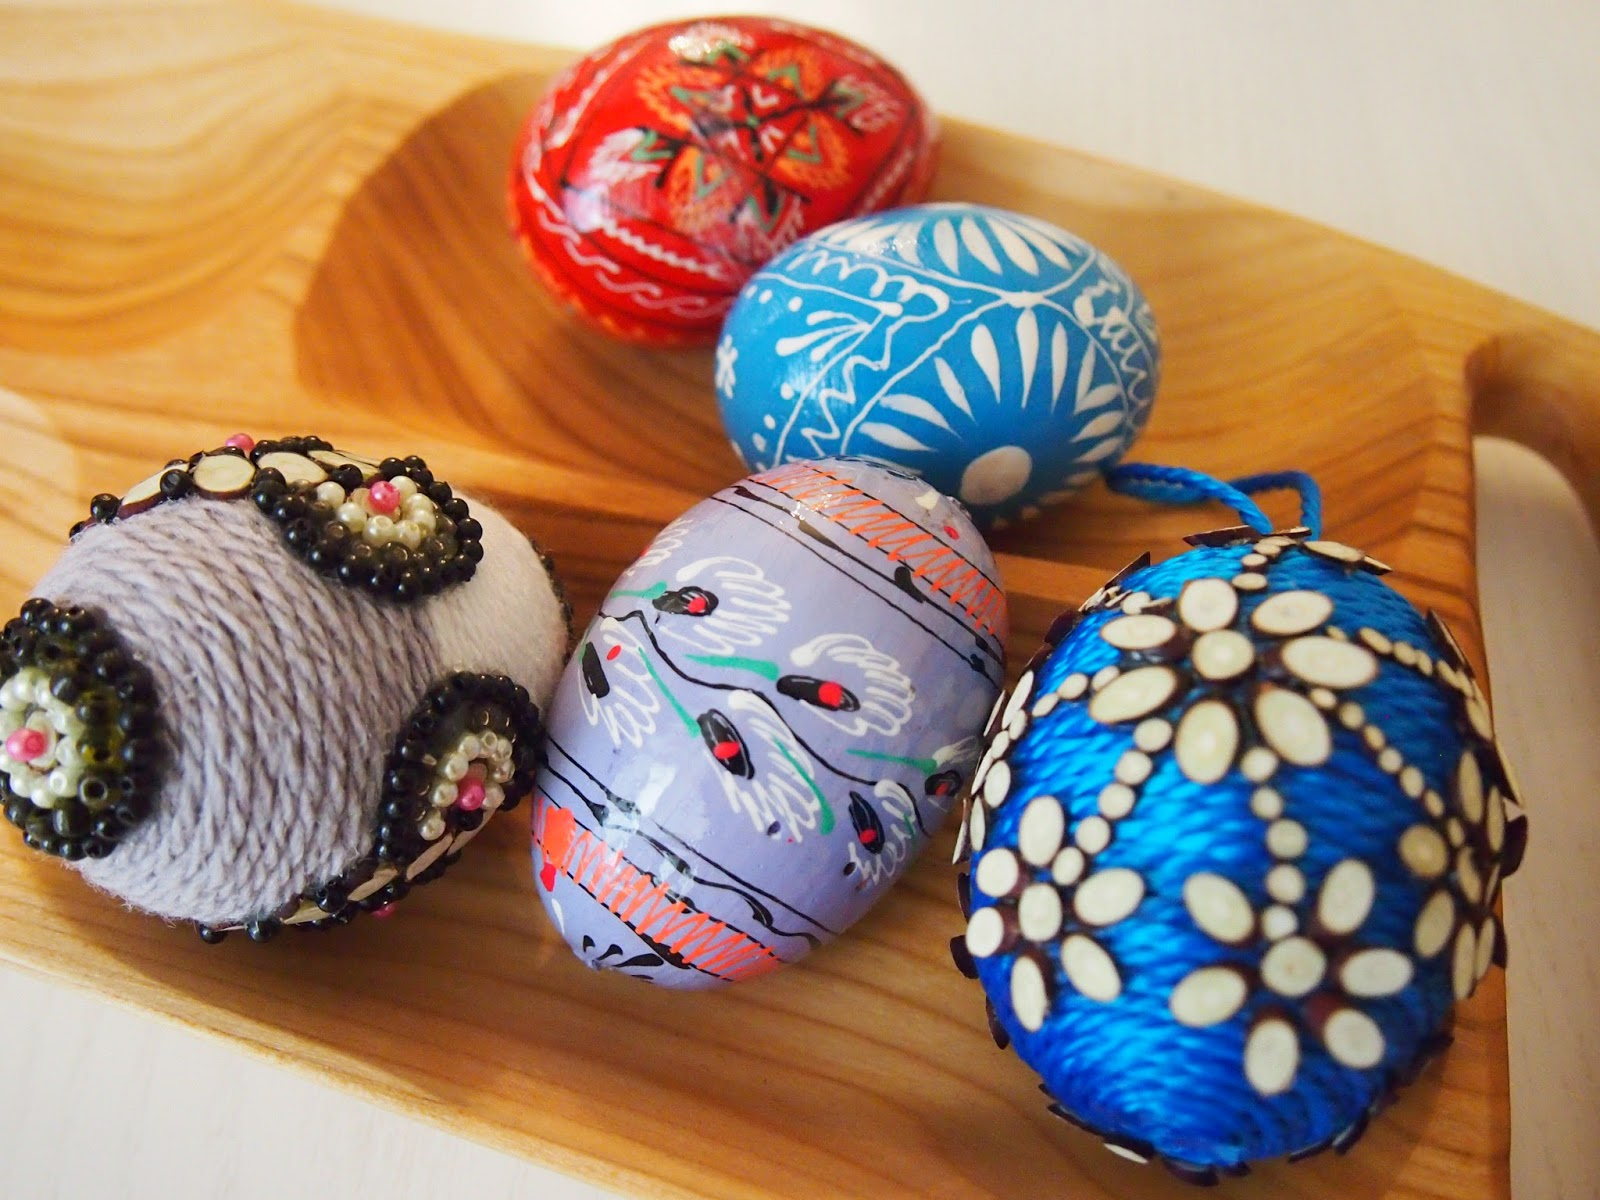 Lithuanian painted eggs